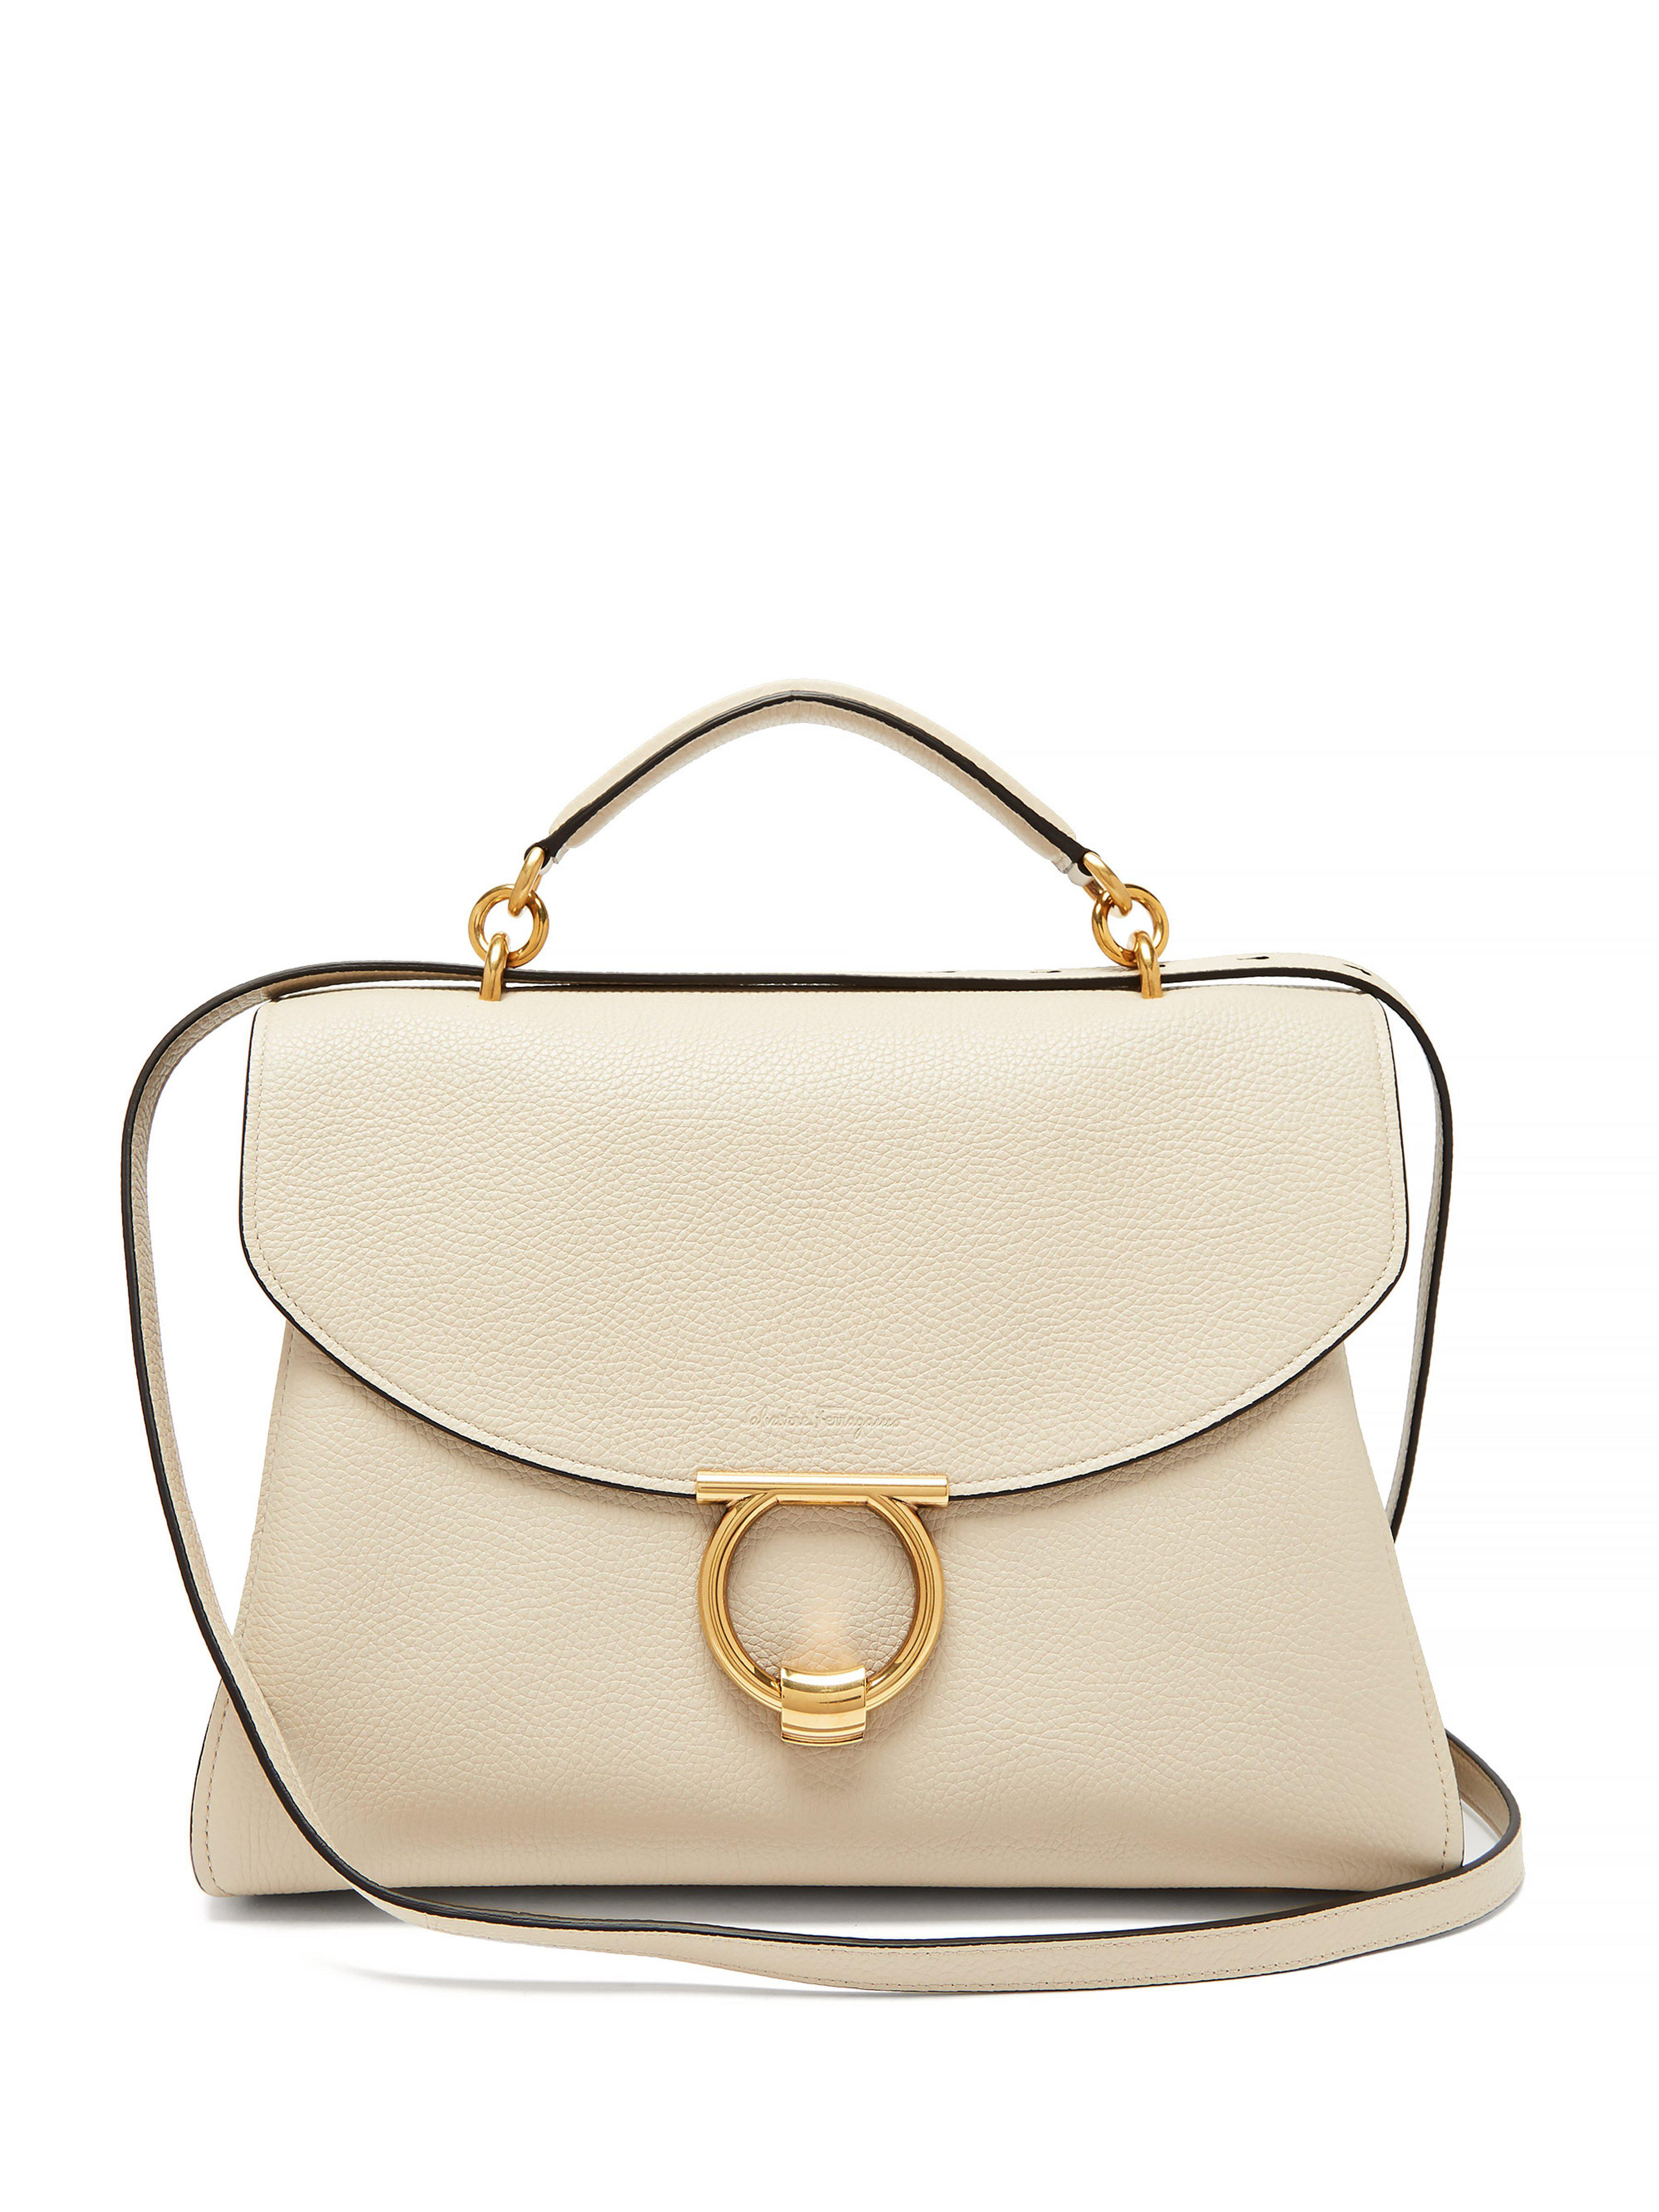 90e26e02d952 Ferragamo Margot Grained Leather Shoulder Bag in Natural - Lyst